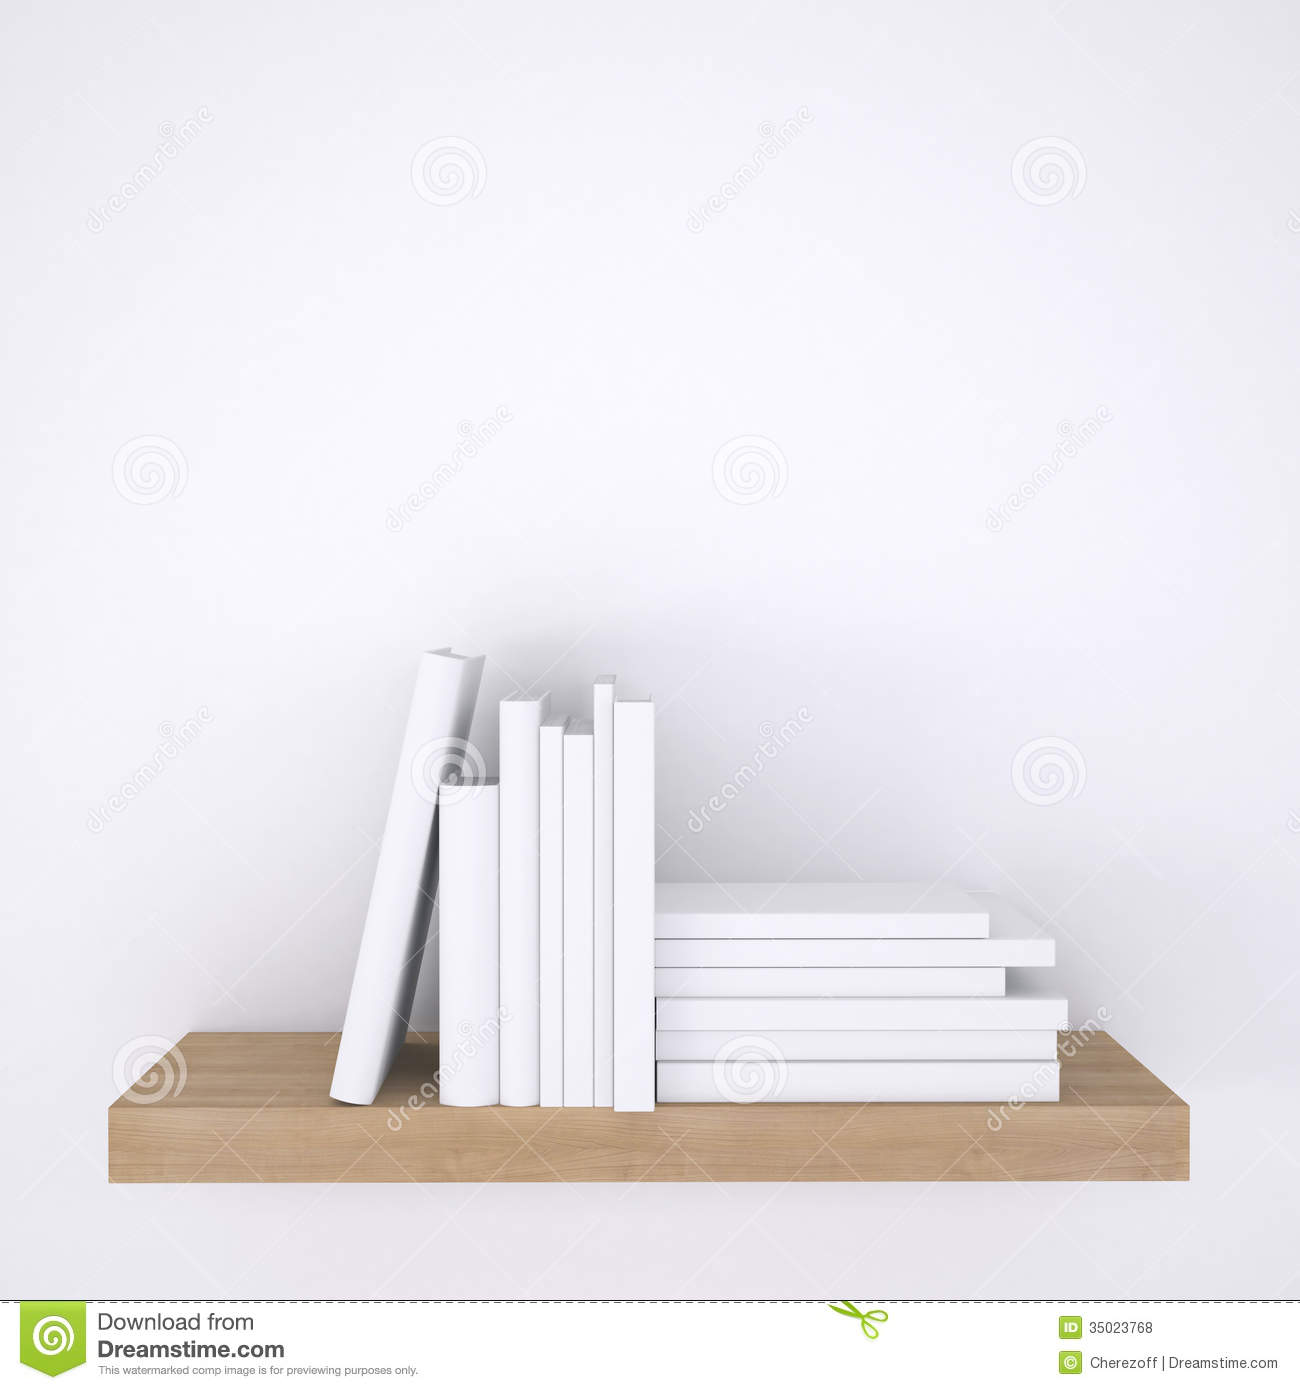 Wooden Shelf With Books On White Wall Background Royalty ...